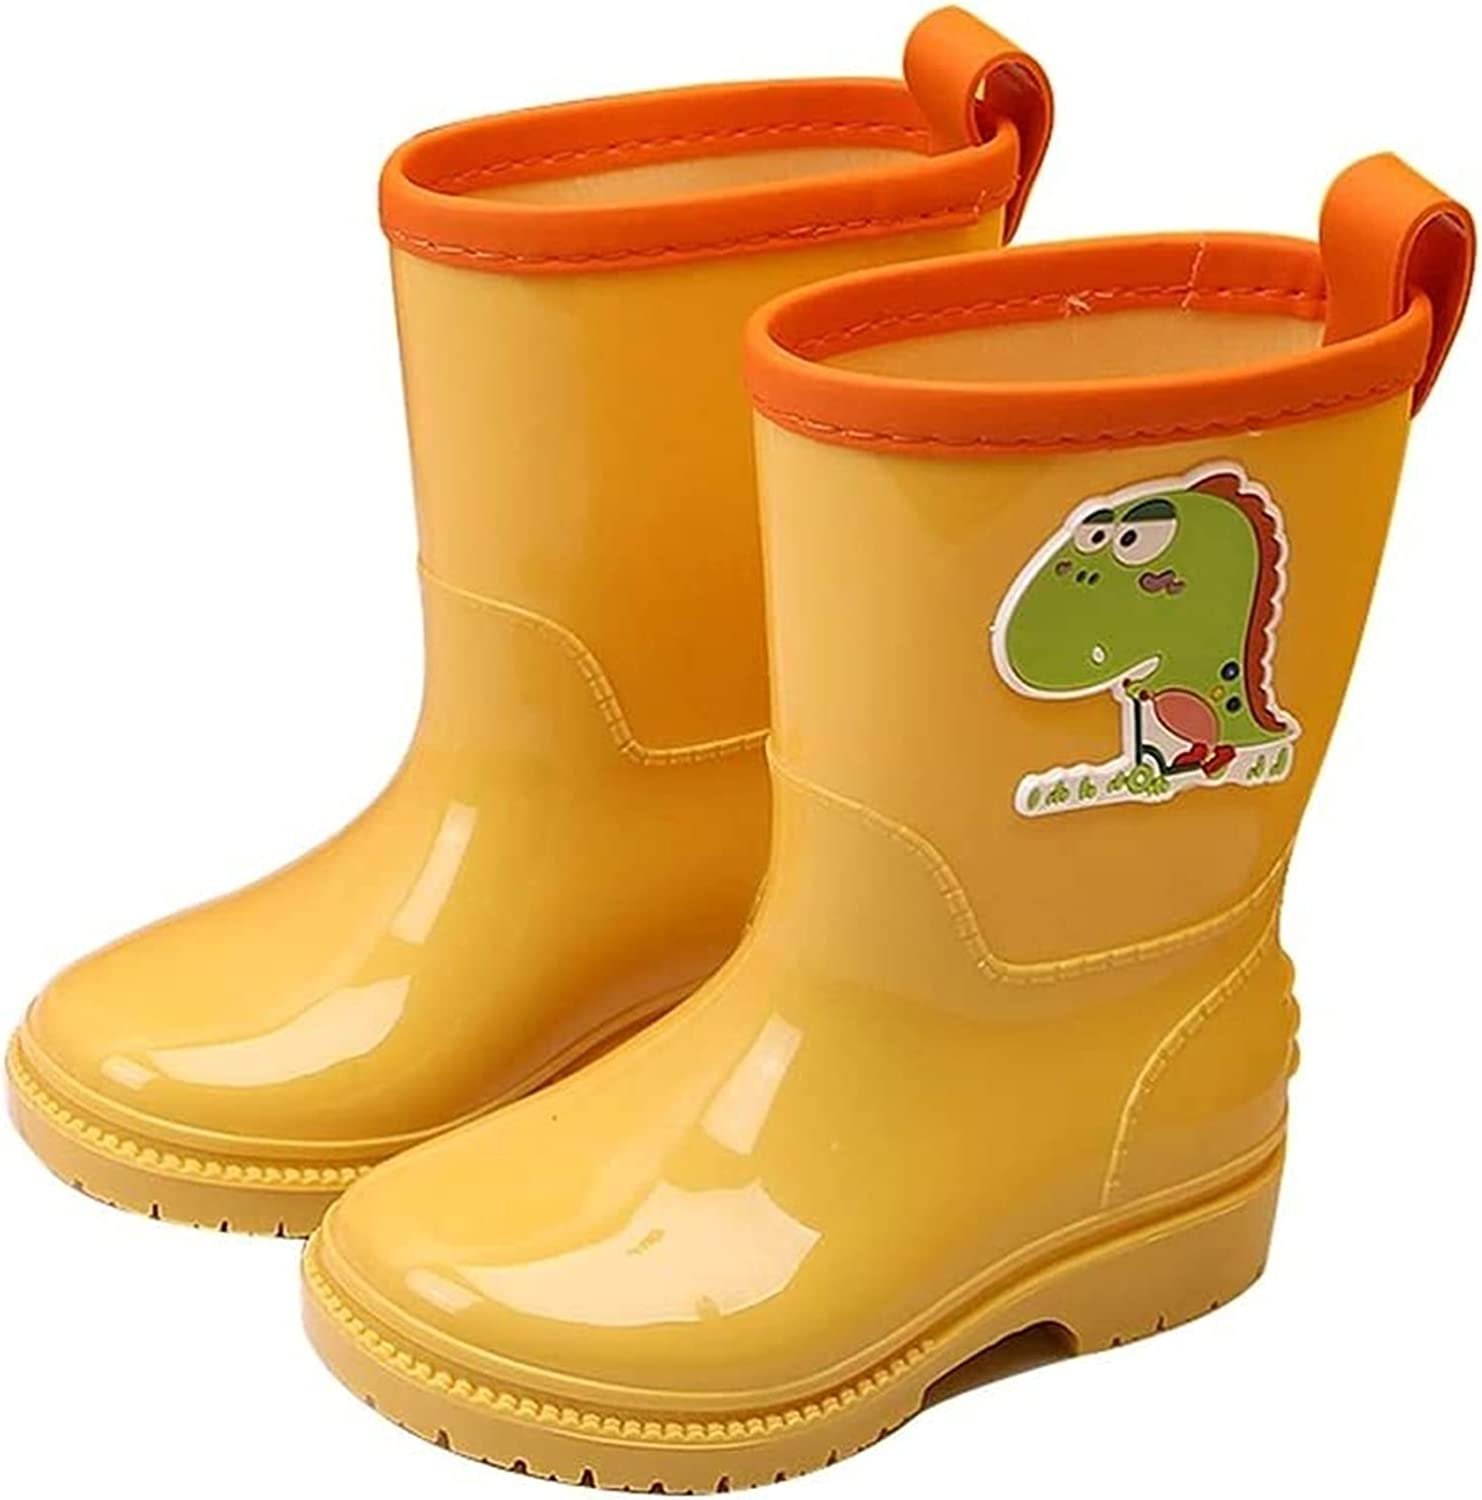 SYZHIWUJIA Rain Boots Boys and Girls Non-Slip Rain Boots Toddler Waterproof Boots Cartoon Pattern Design Light Rain Boots Water Shoes Children's rain Boots (Color : Yellow, Size : 20cm)